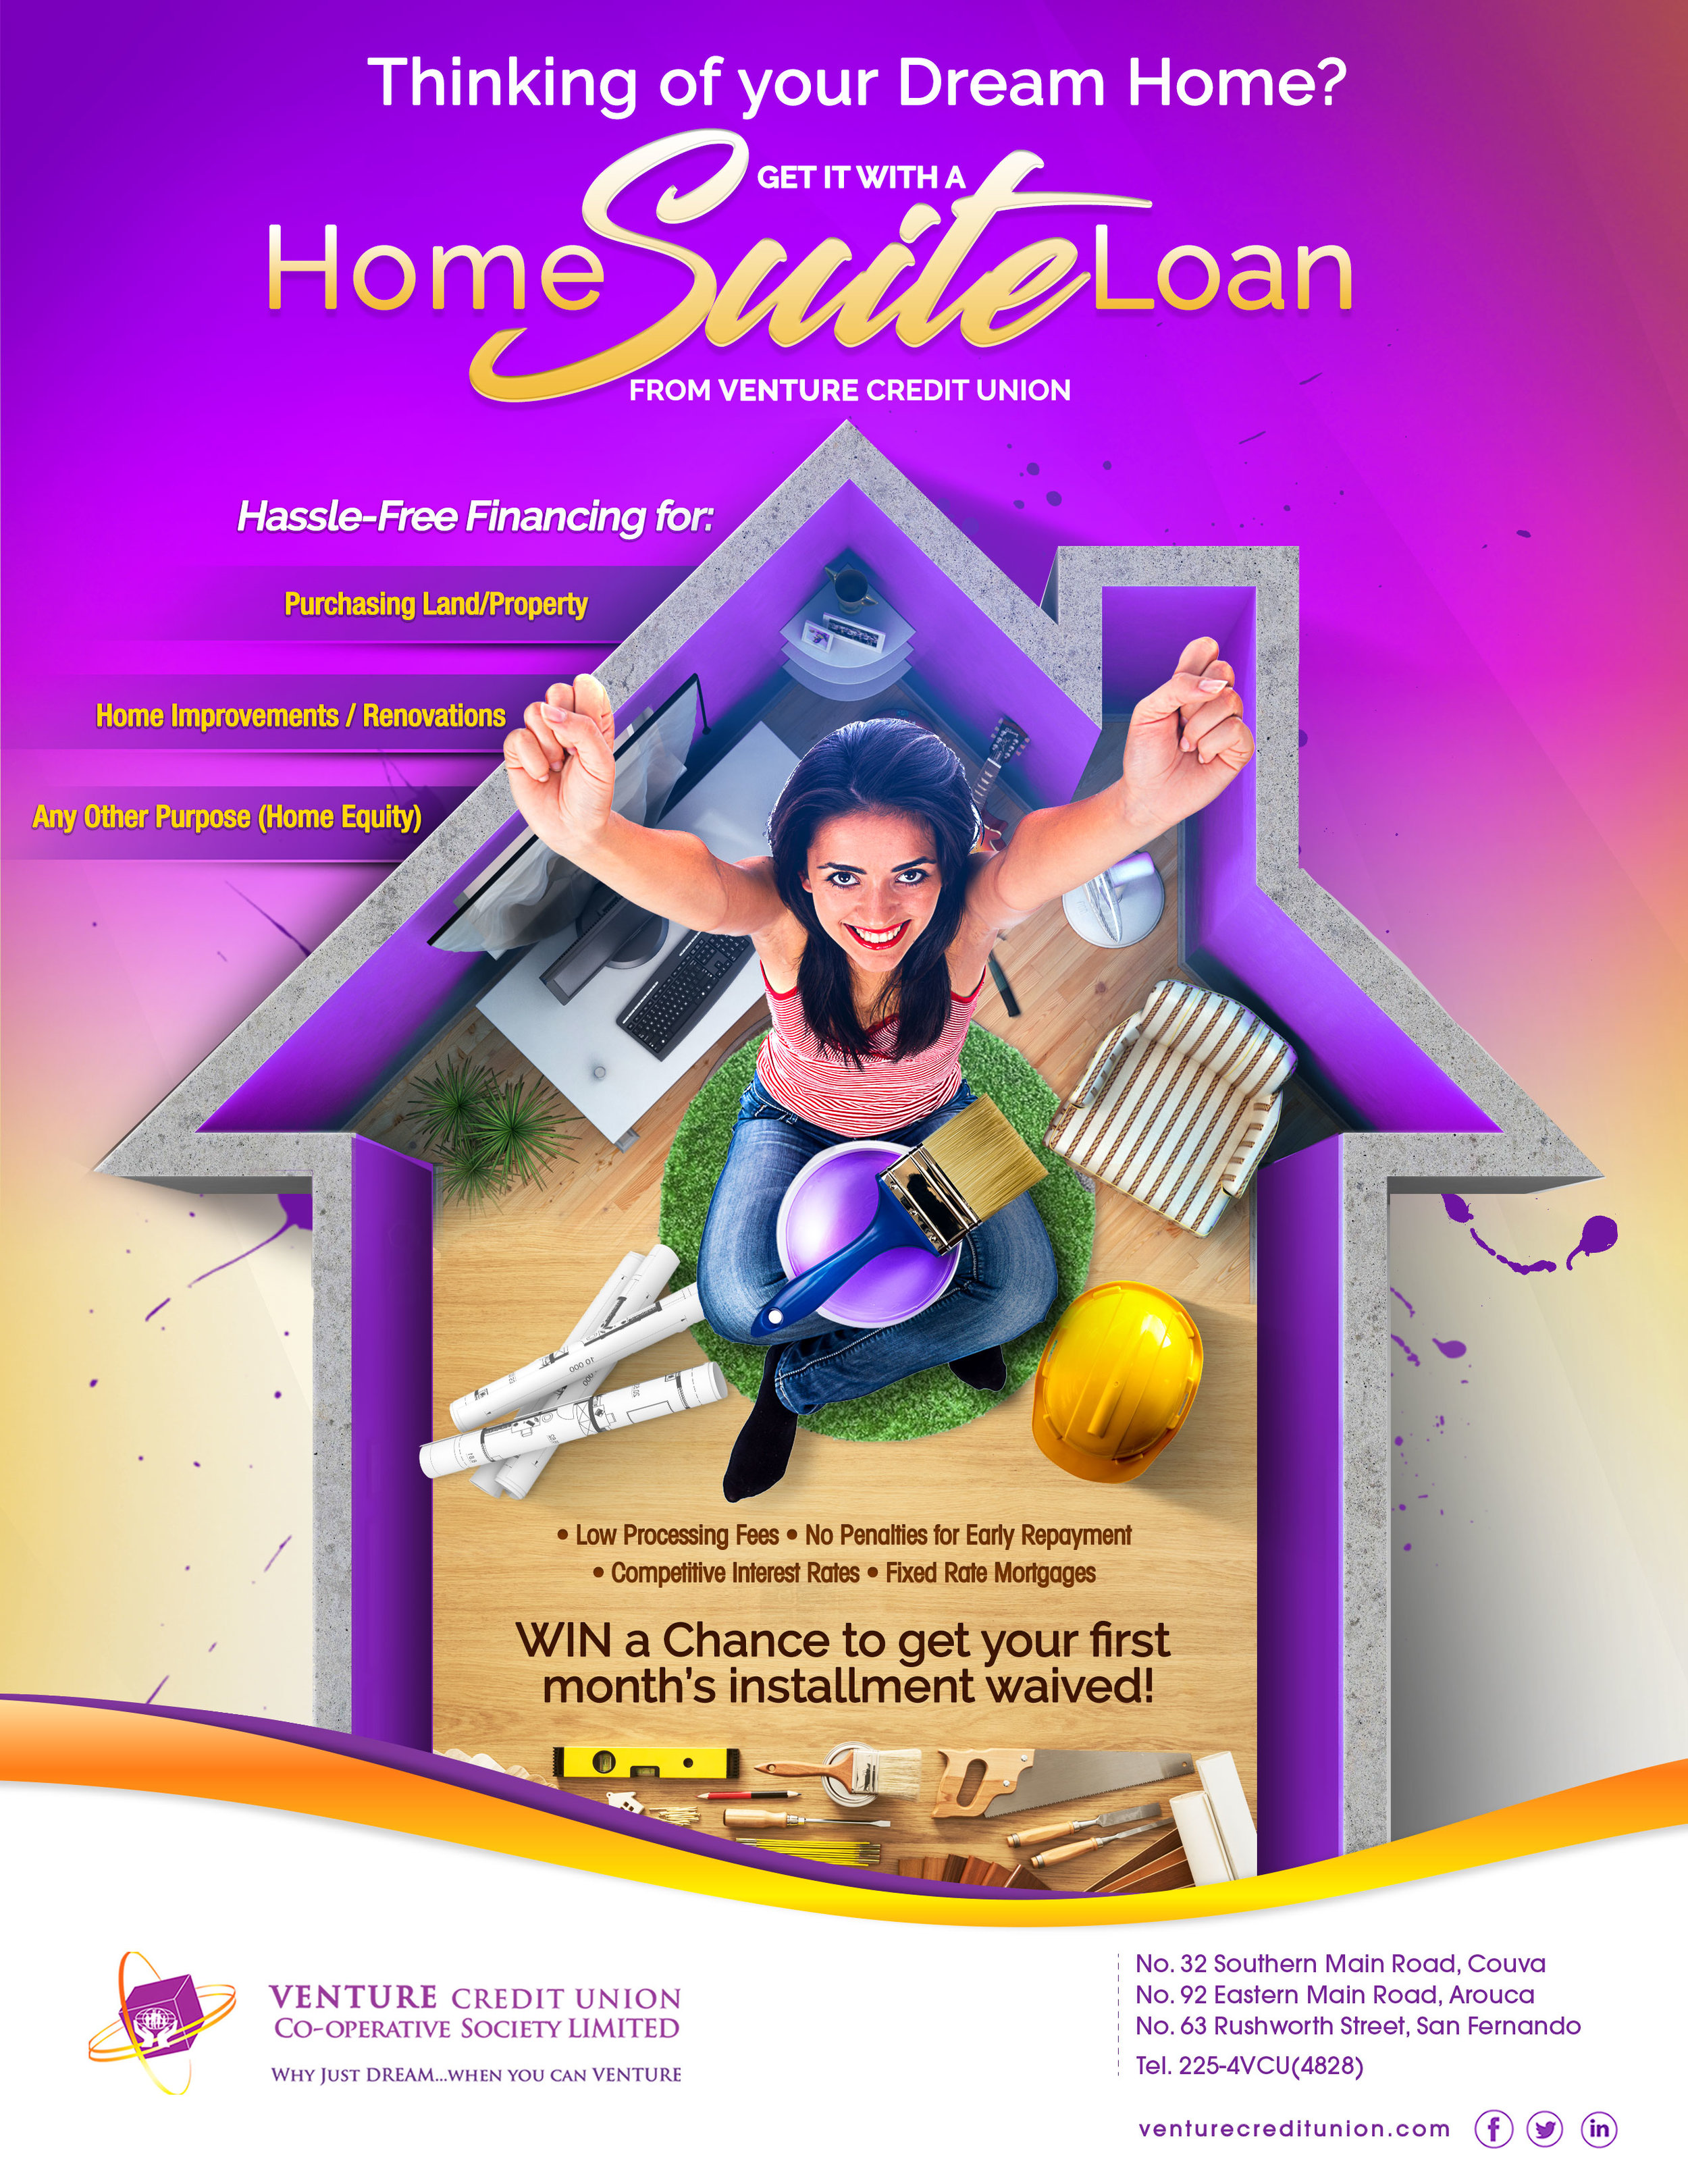 Home-Sweet-Loan-2018-other-version-Revised-2.jpg